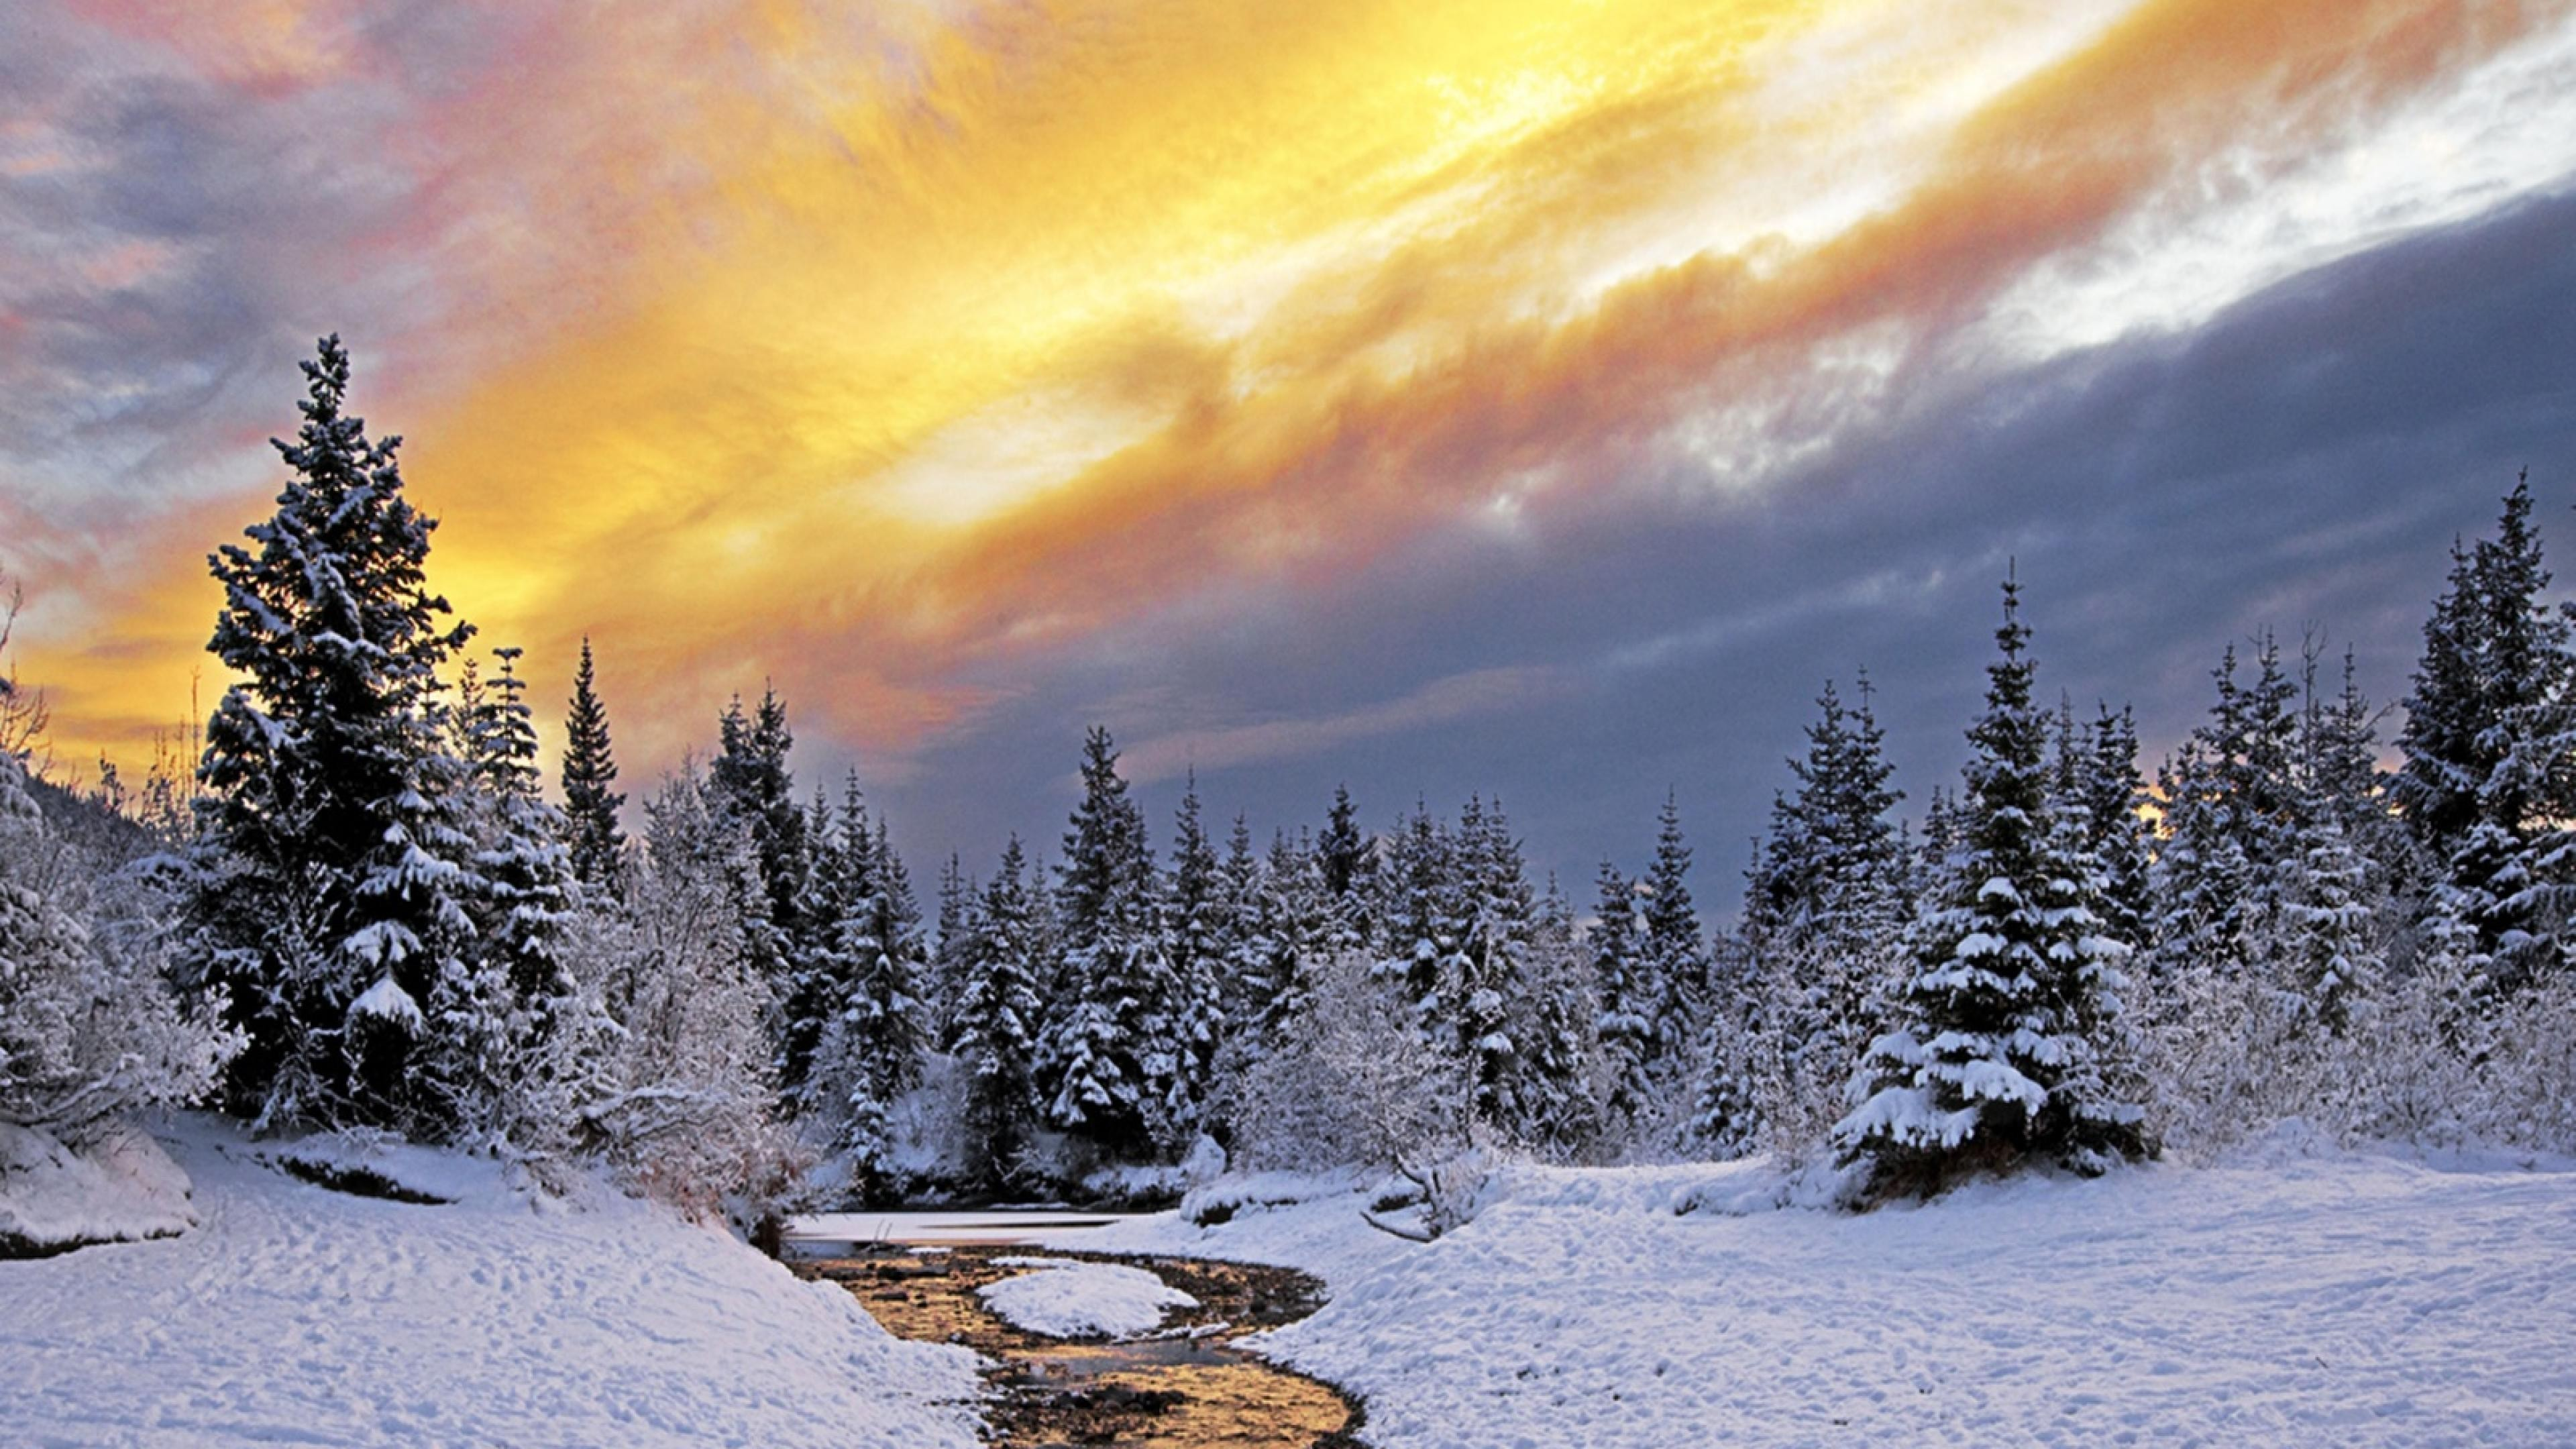 3840x2160 Winter Nature Snow Landscape River Ultra Winter Mac Desktop Backgrounds 3840x2160 Wallpaper Teahub Io